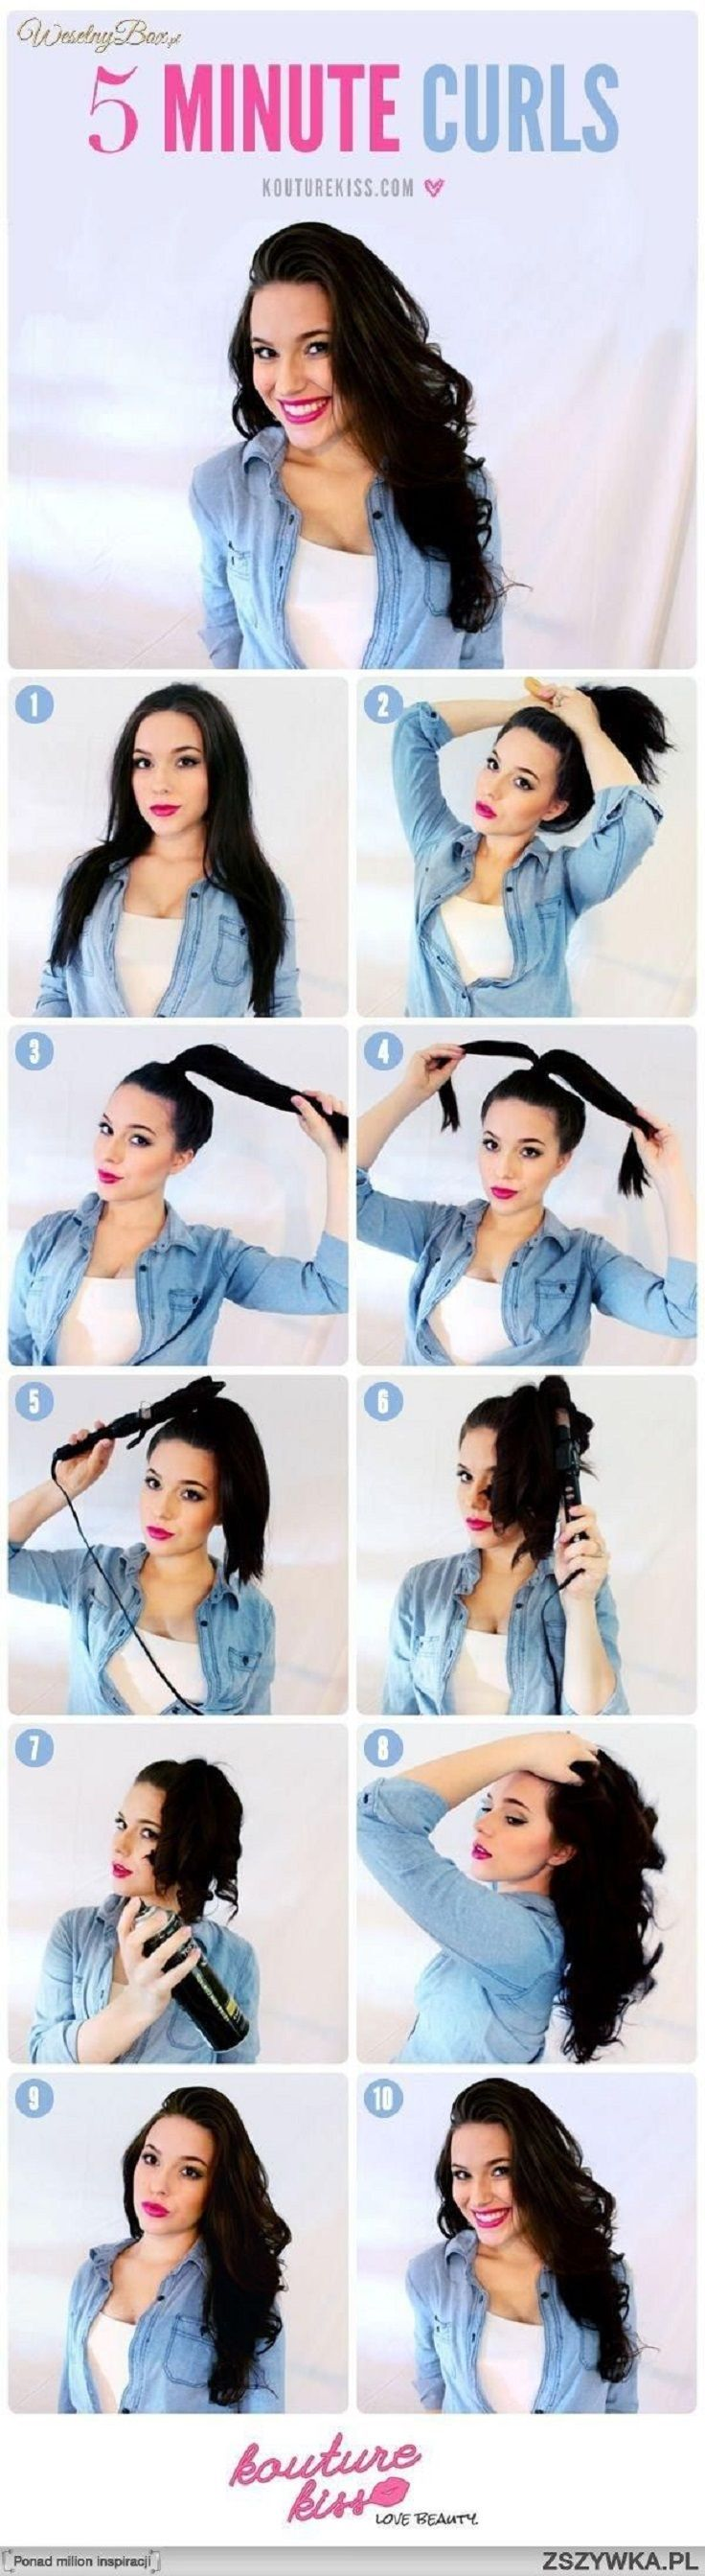 104 best simple hair & makeup images on Pinterest